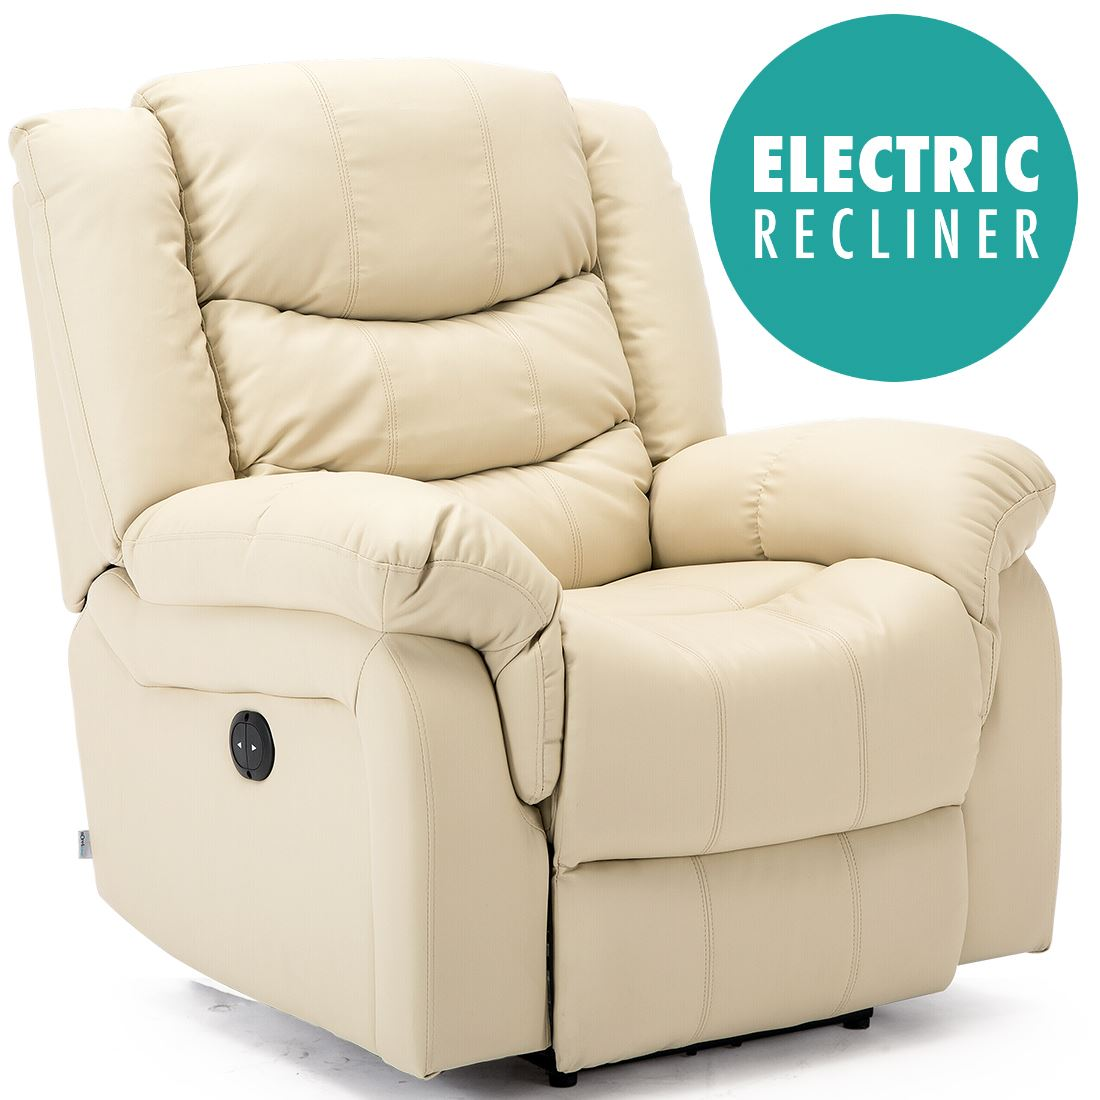 Perfect SEATTLE ELECTRIC LEATHER AUTO RECLINER ARMCHAIR SOFA HOME LOUNGE CHAIR